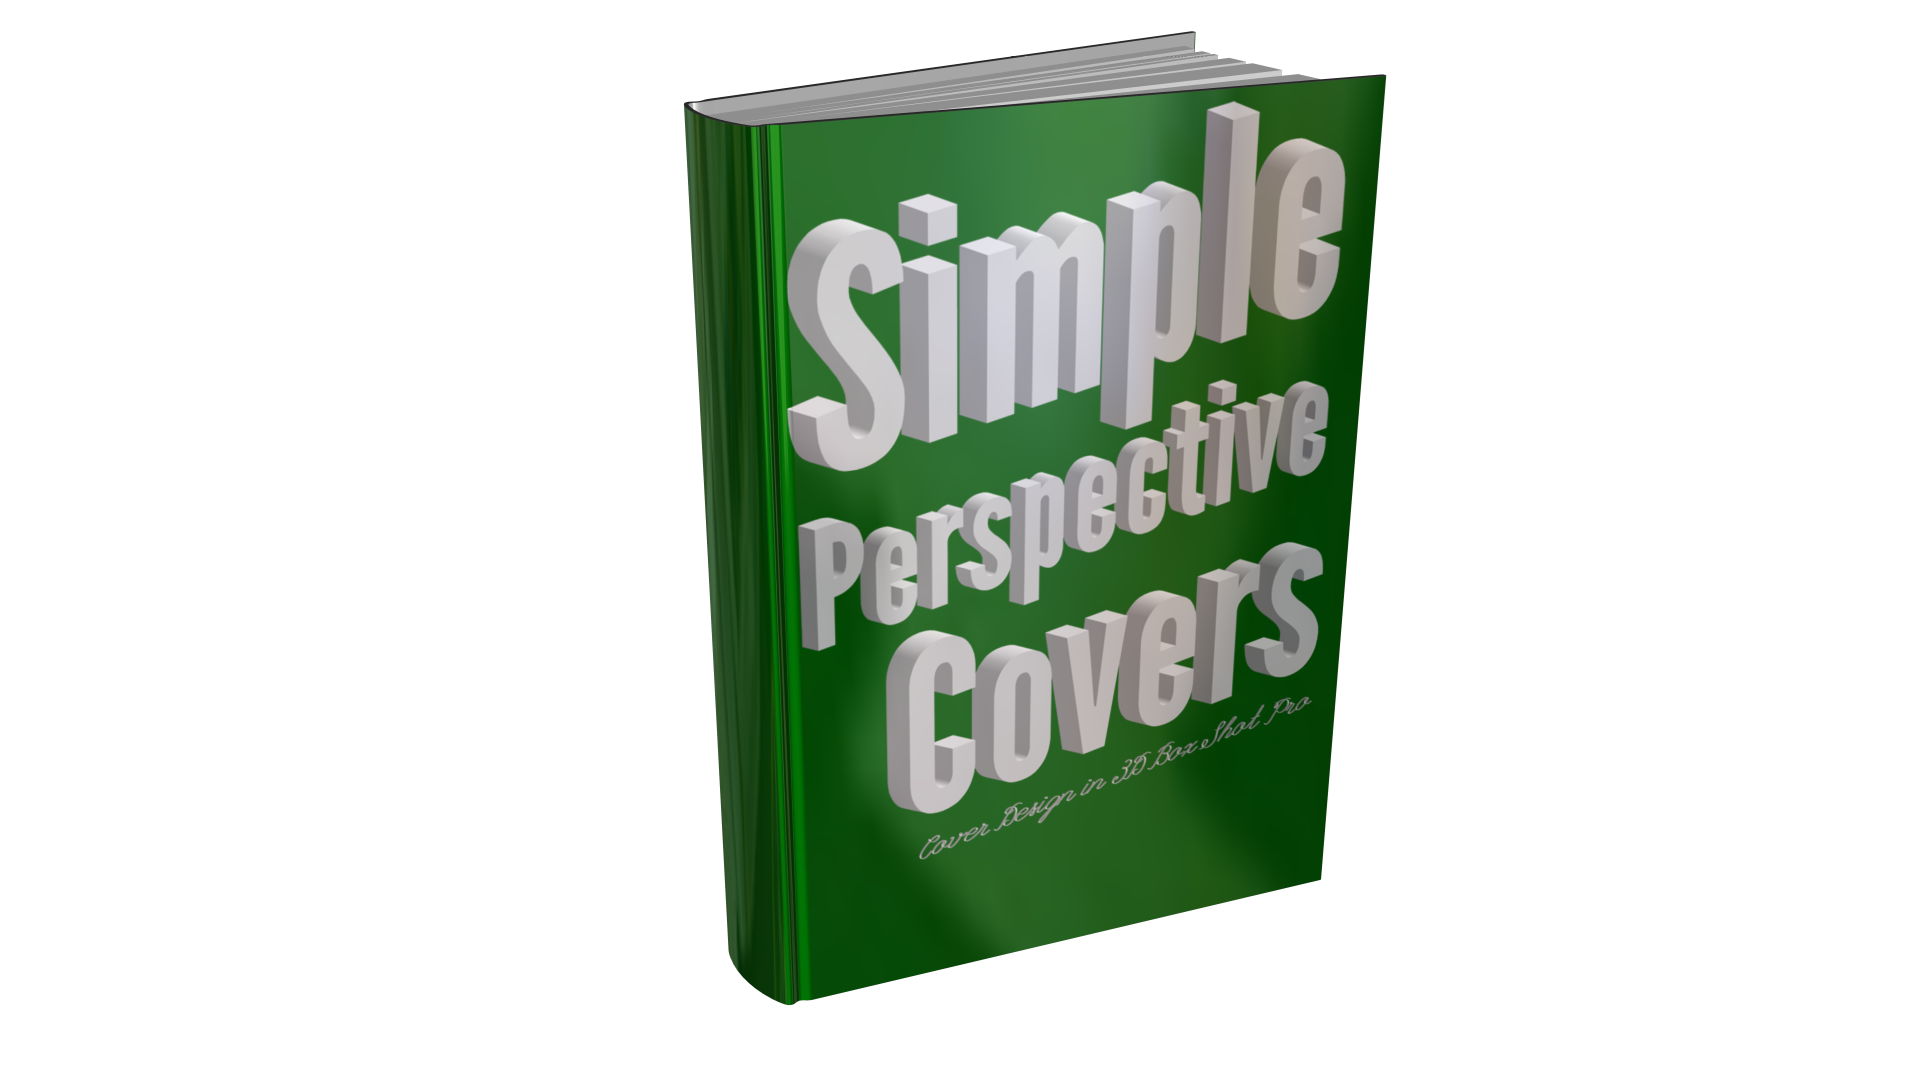 Simple-Perspective-Cover